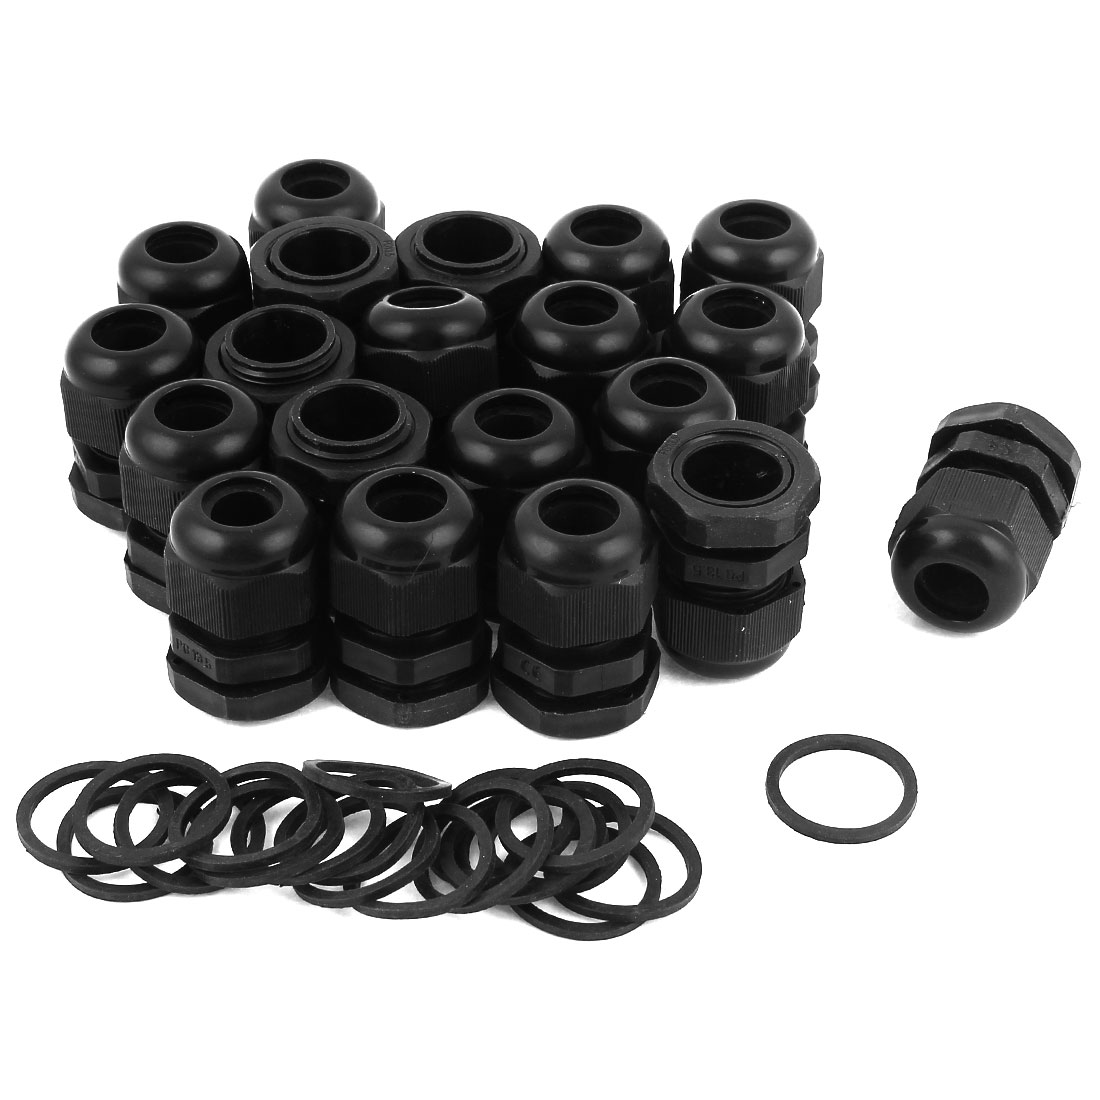 20 Pcs PG13.5 Black Plastic 6-12mm Dia Waterproof Cable Glands Connectors